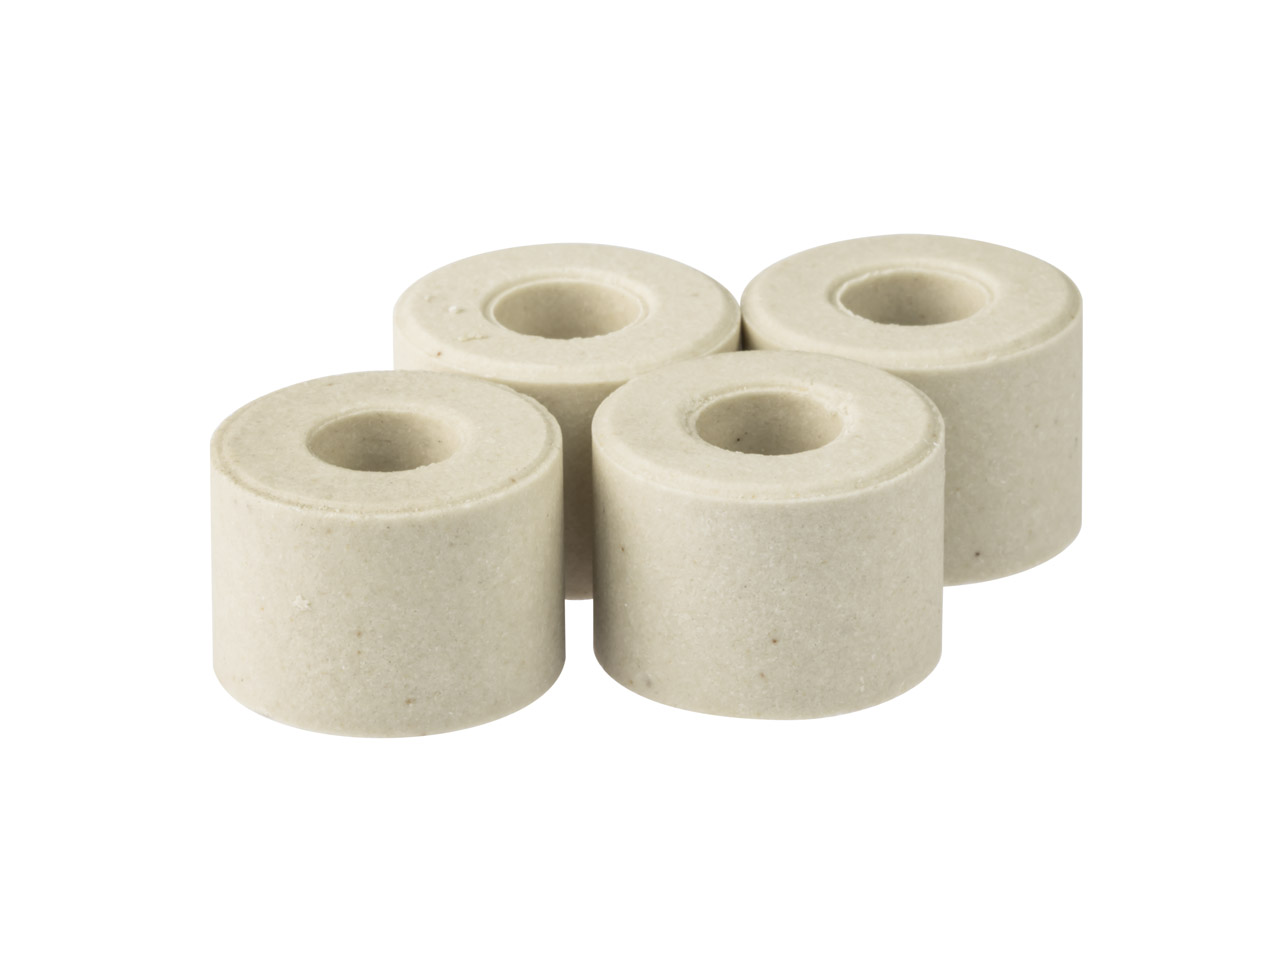 Kiln Post Small Pack of 4